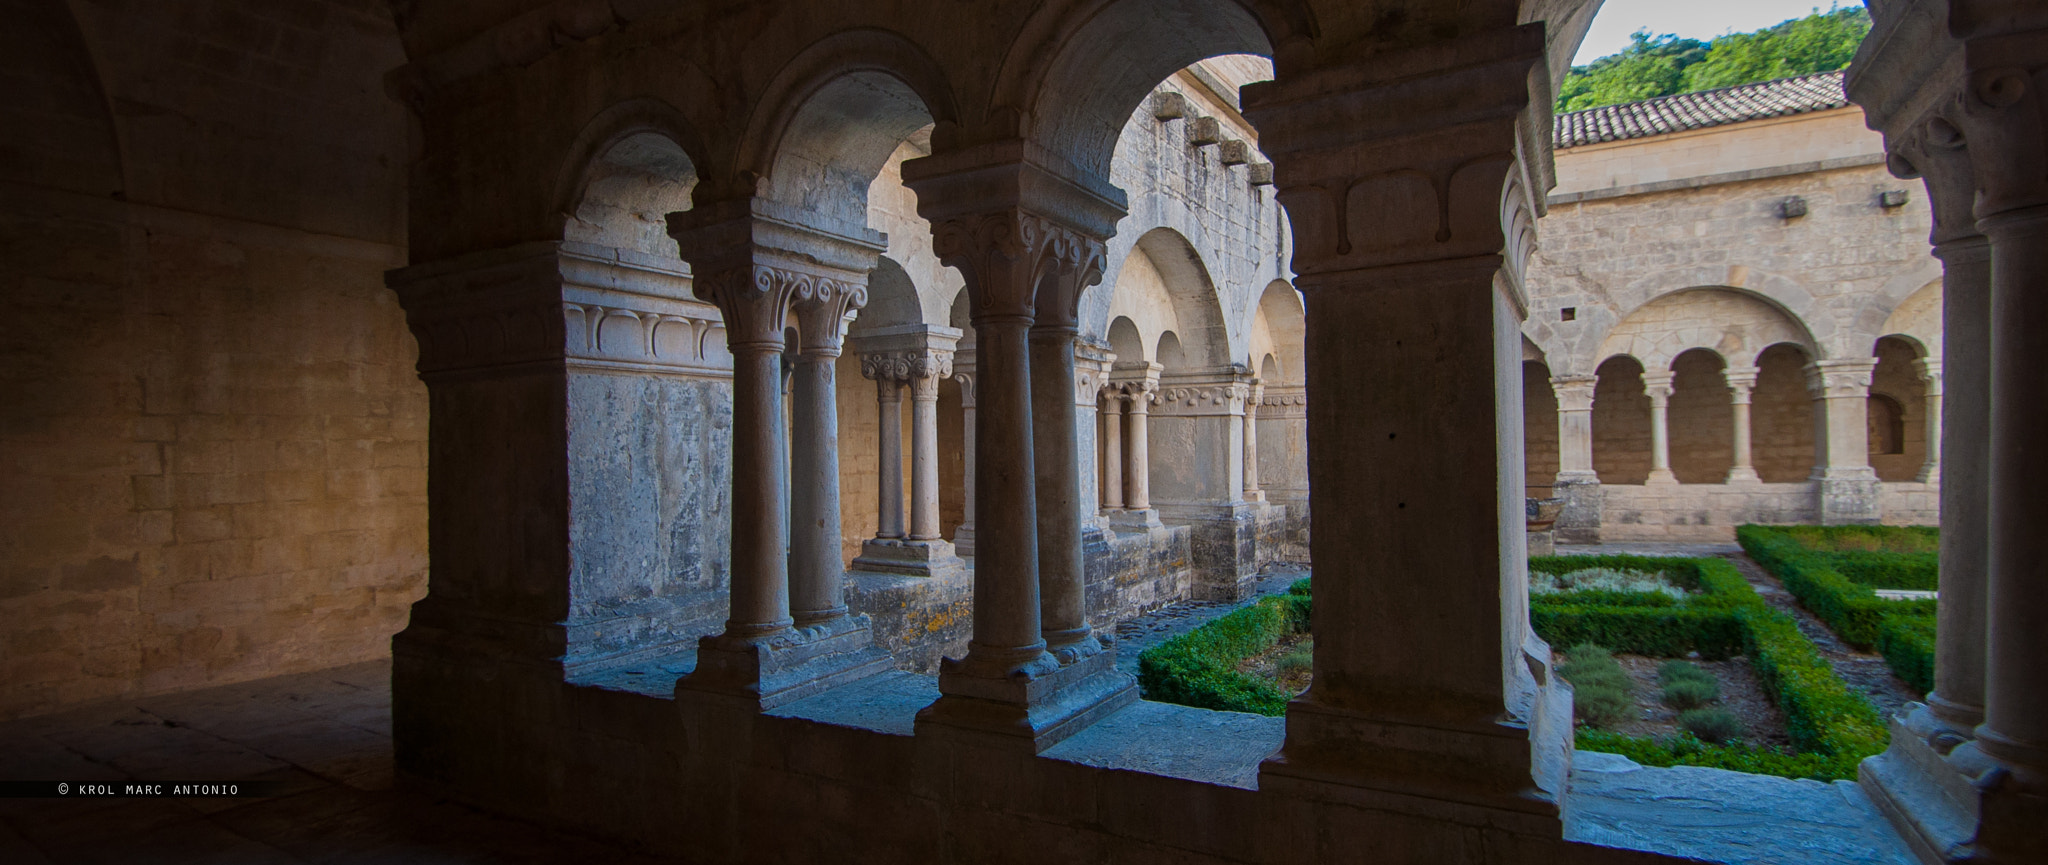 Photograph The cloister by Krol  Marc Antonio on 500px